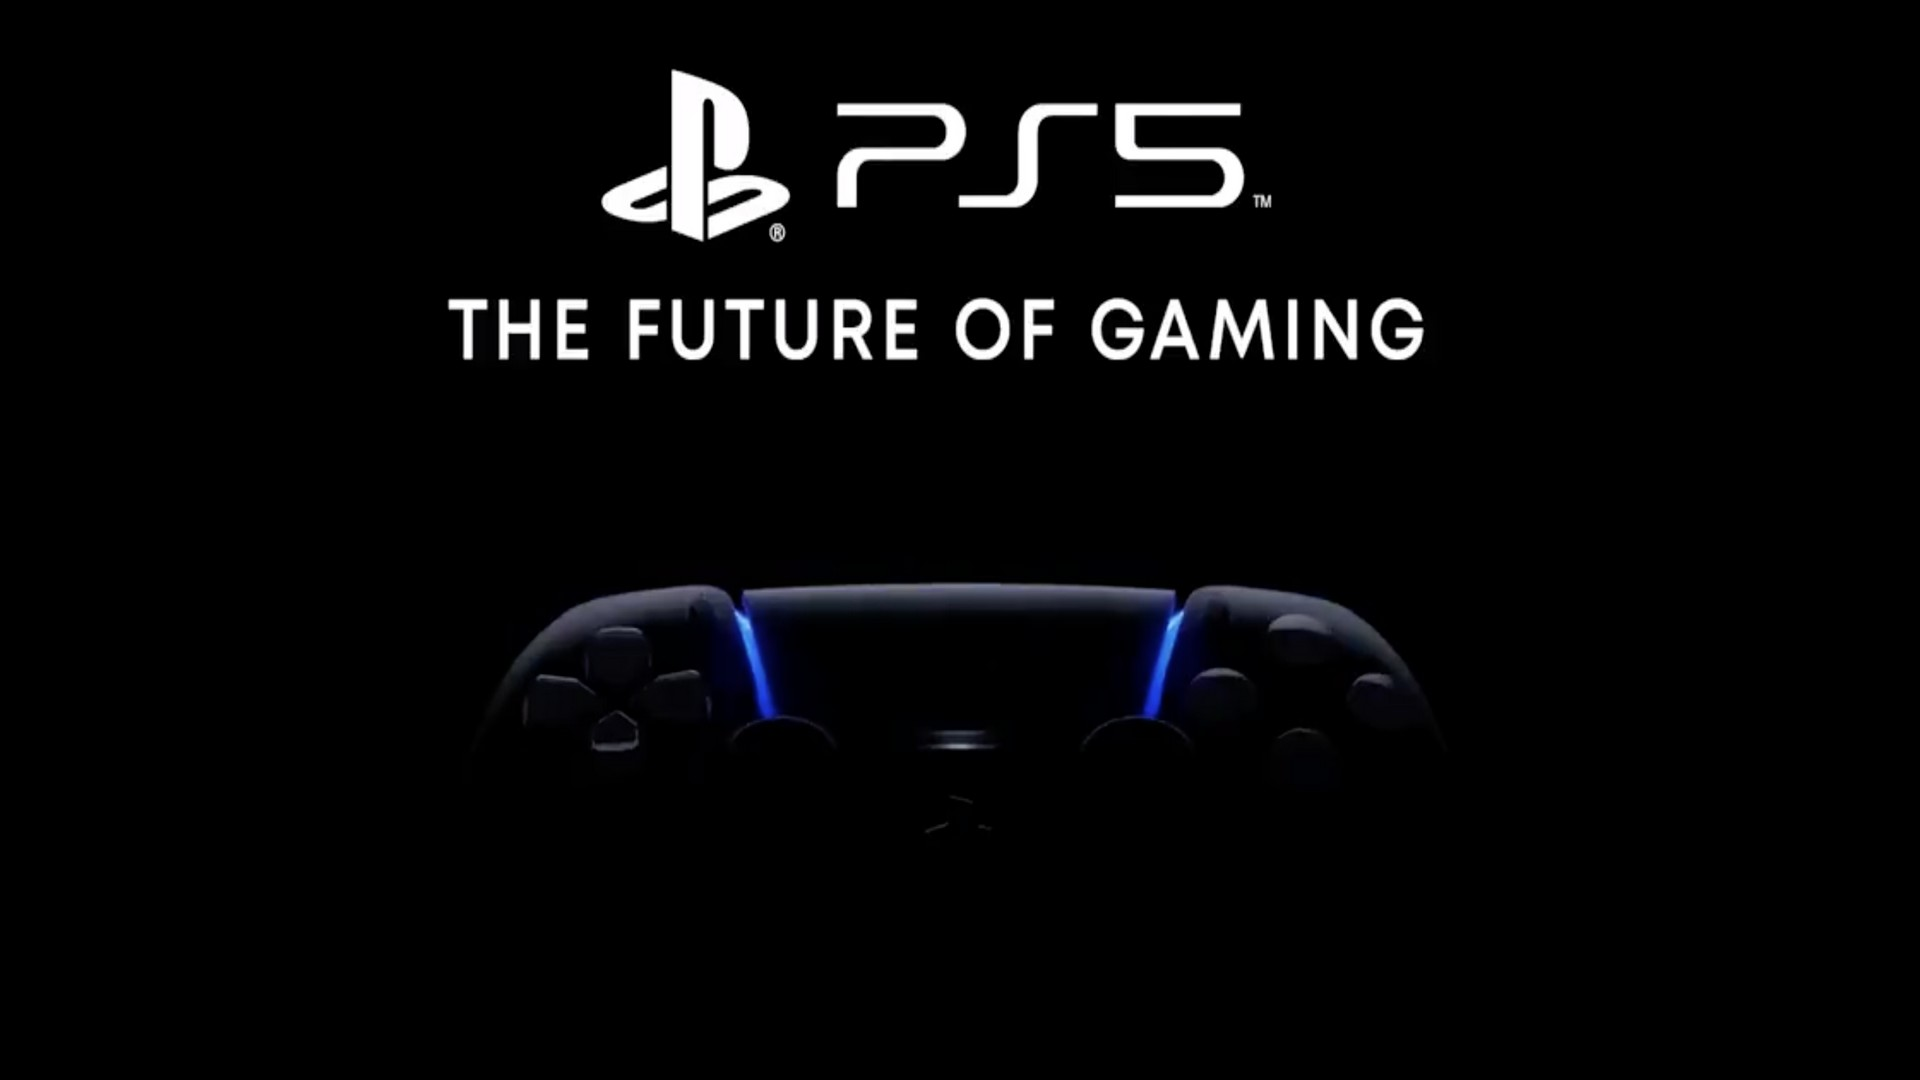 Sony Invite You For A Look At The Future Of Gaming On PlayStation 5